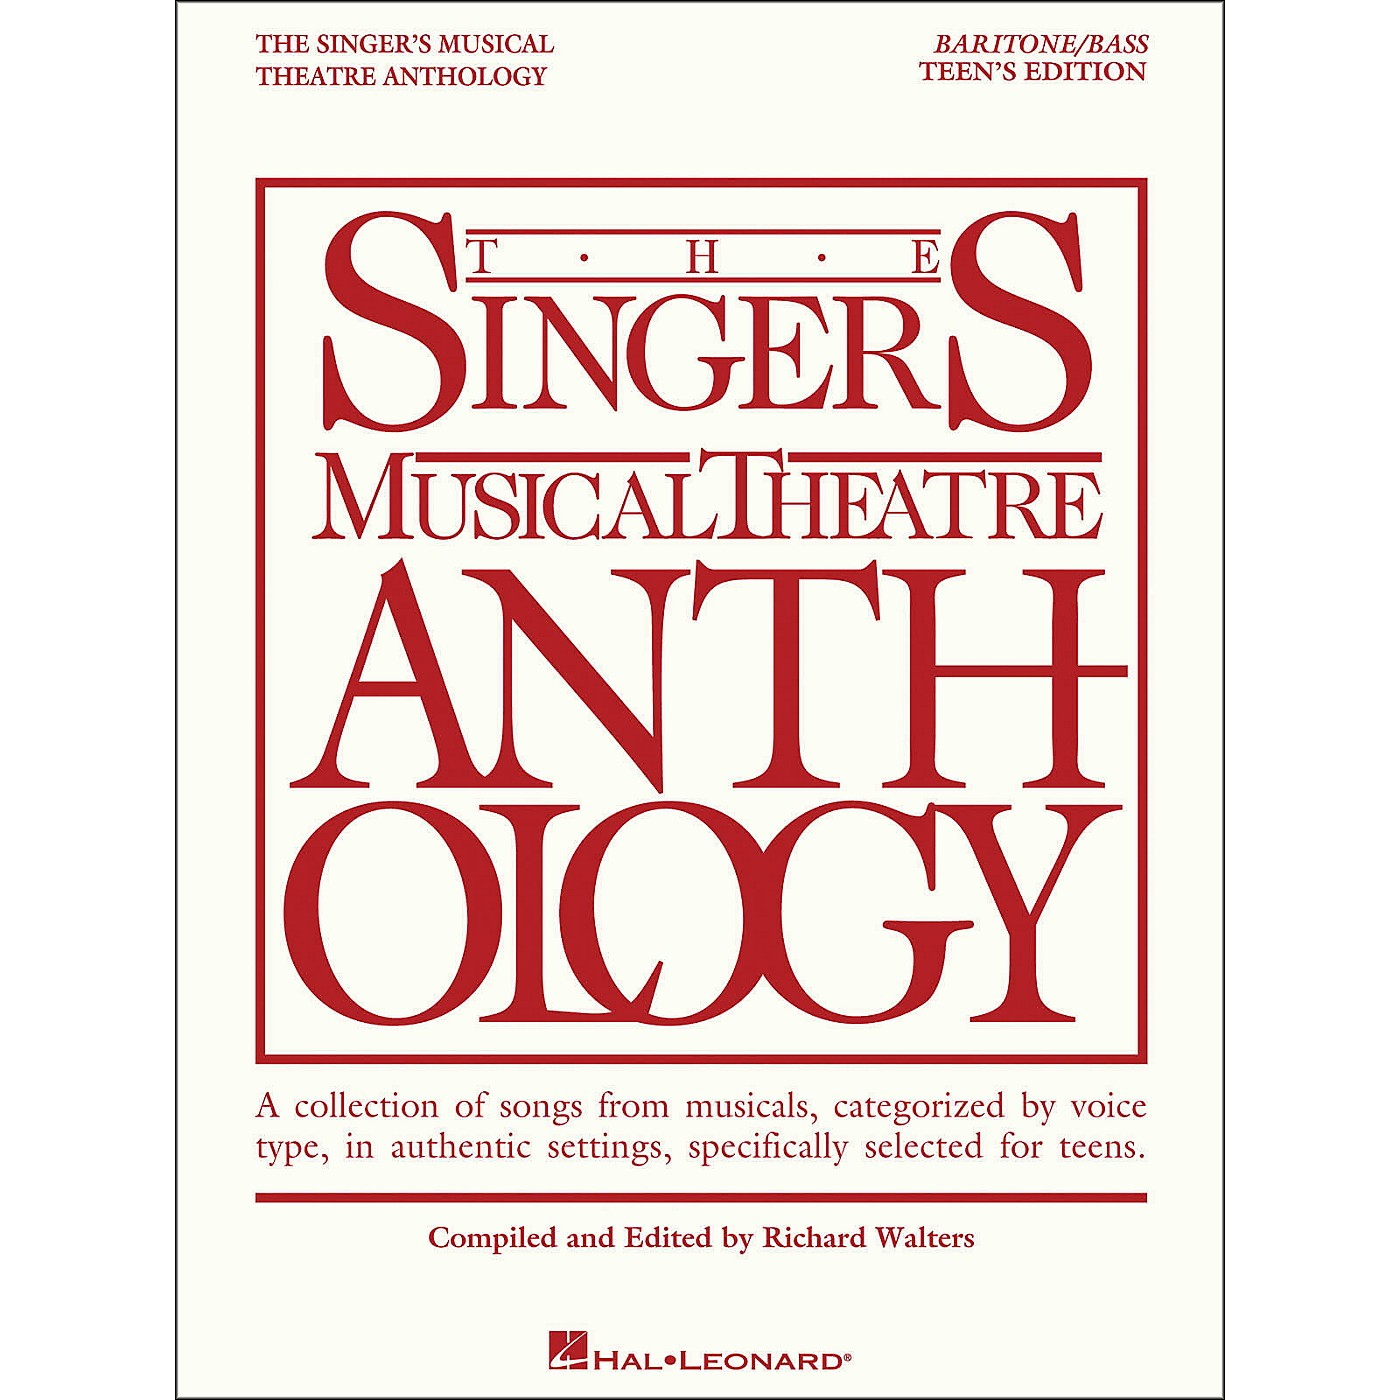 Hal Leonard The Singer's Musical Theatre Anthology Teen's Edition Baritone/Bass thumbnail